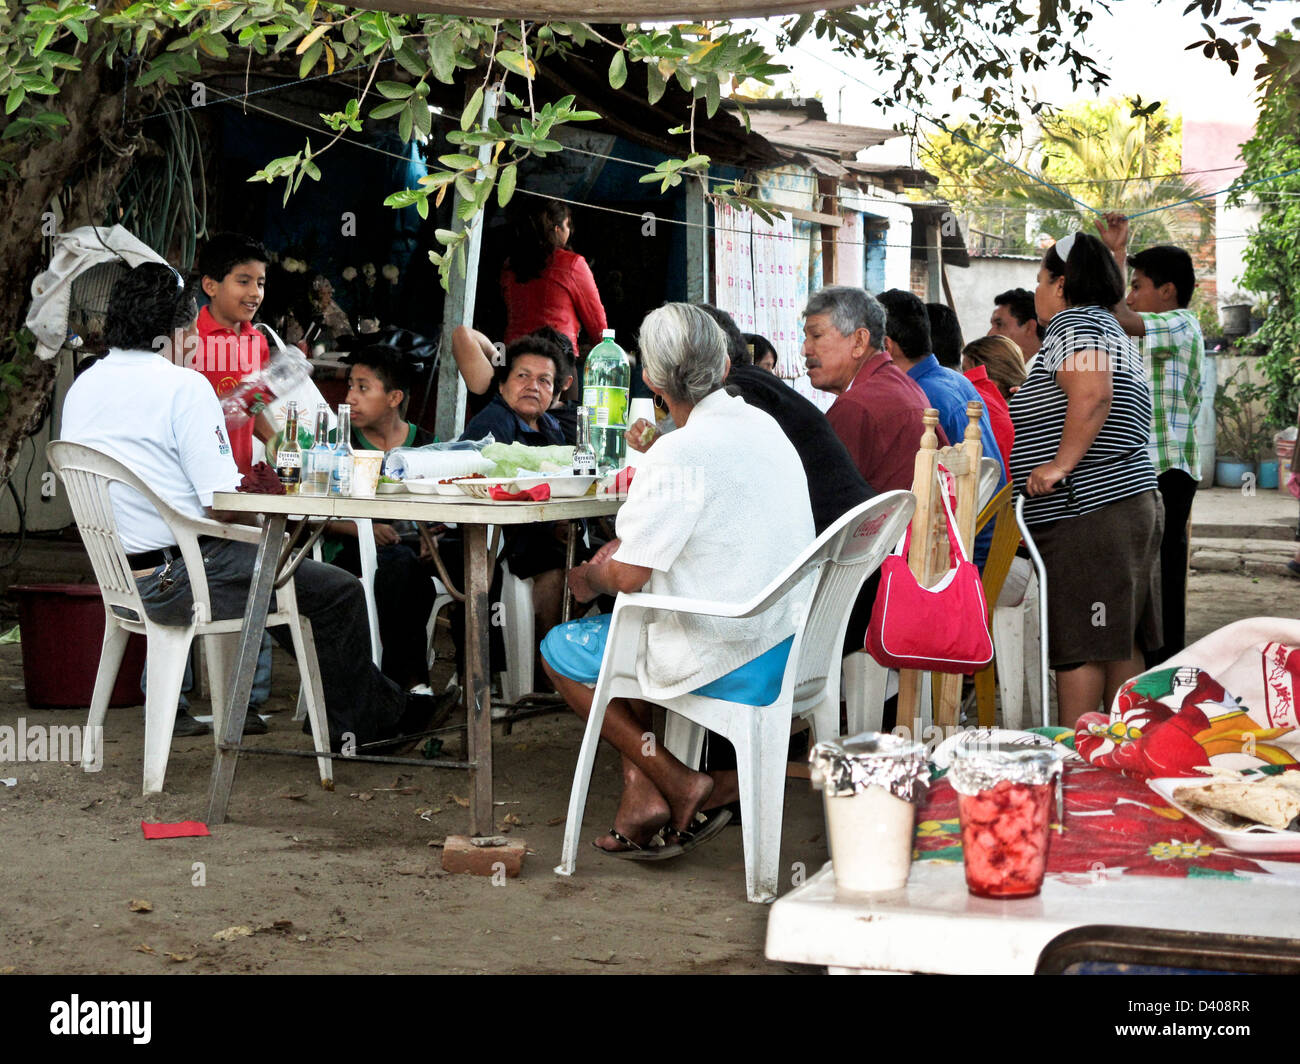 4 Generations Of A Mexican Family Enjoy Sunday Afternoon Comida Meal Together In Courtyard Their Home Oaxaca De Juarez Mexico